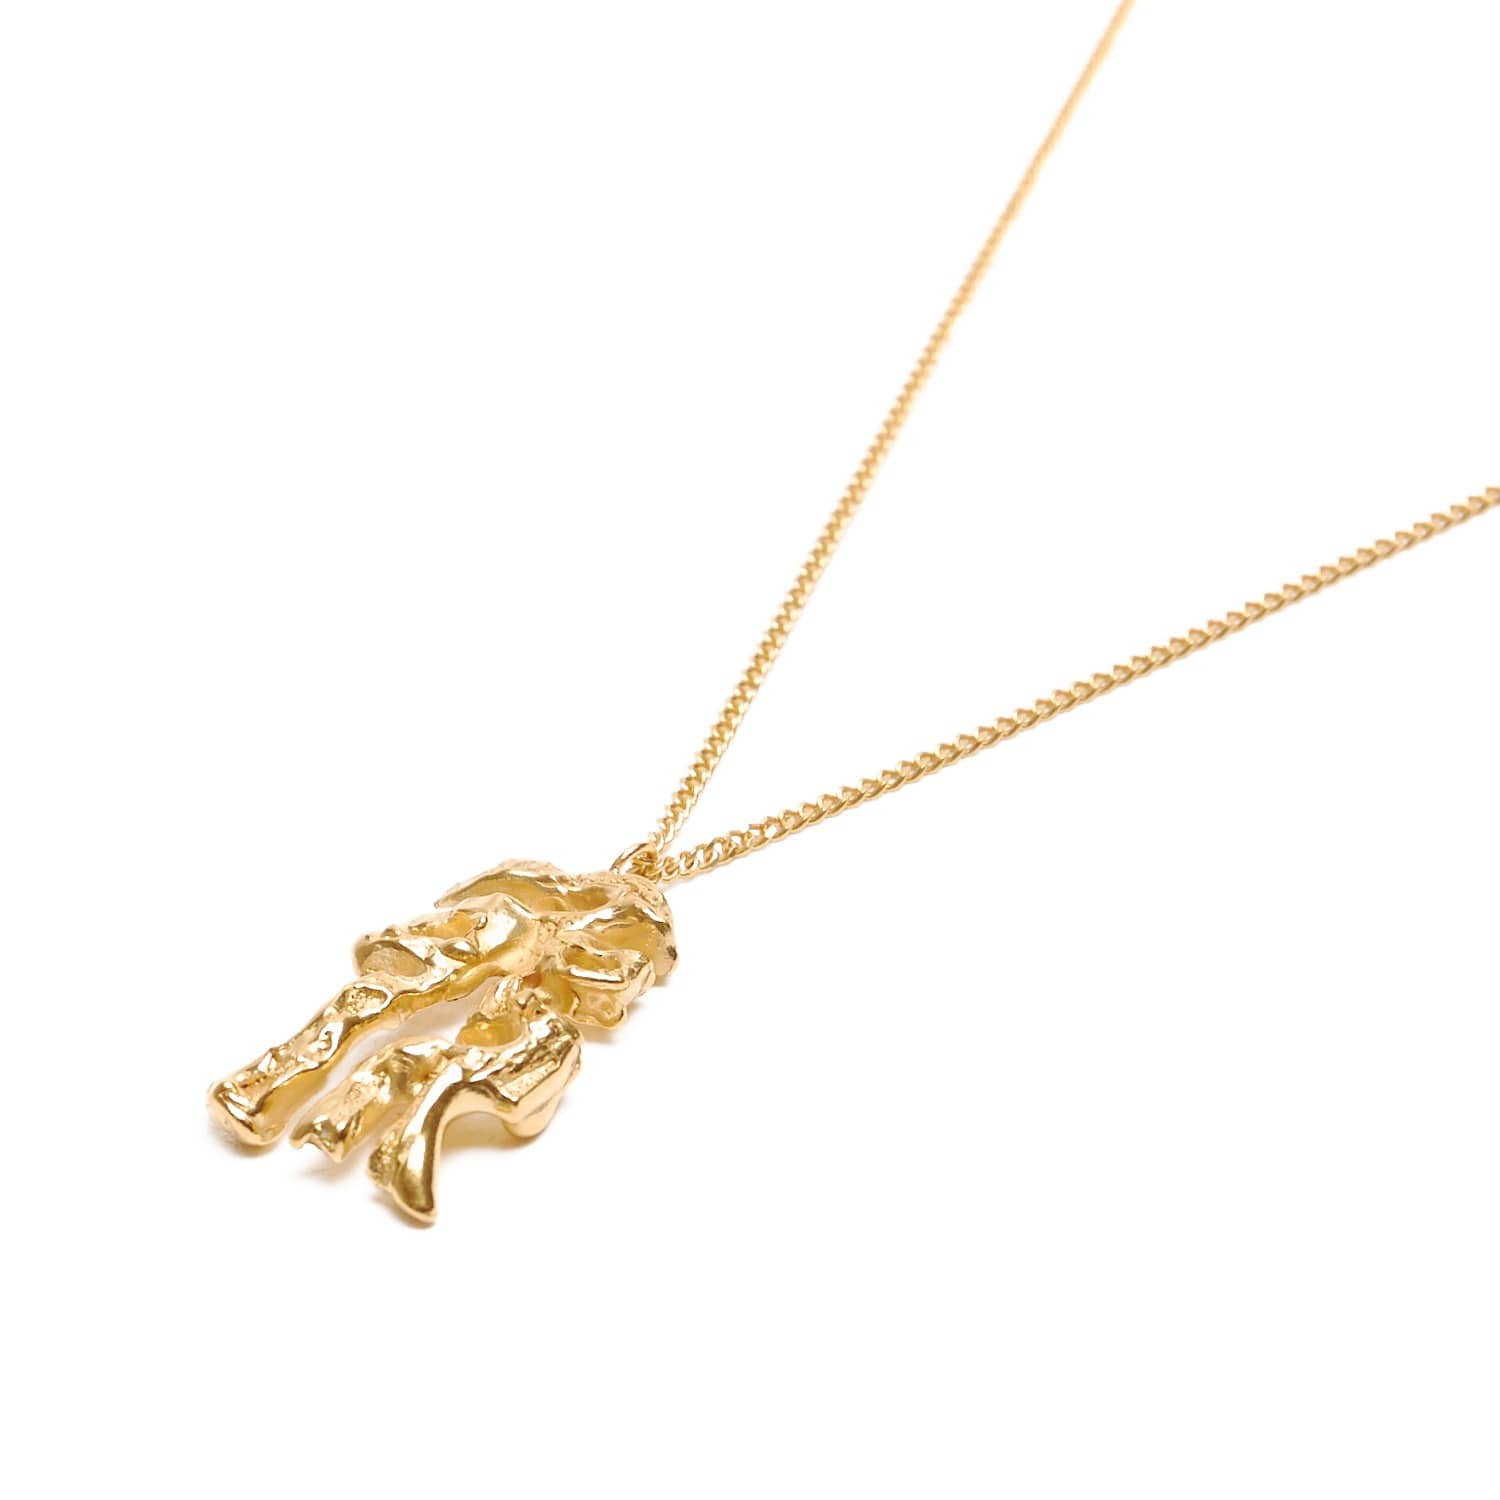 chinese necklaces online loveness necklace zodiac gold products closeup lee pendant top store tiger